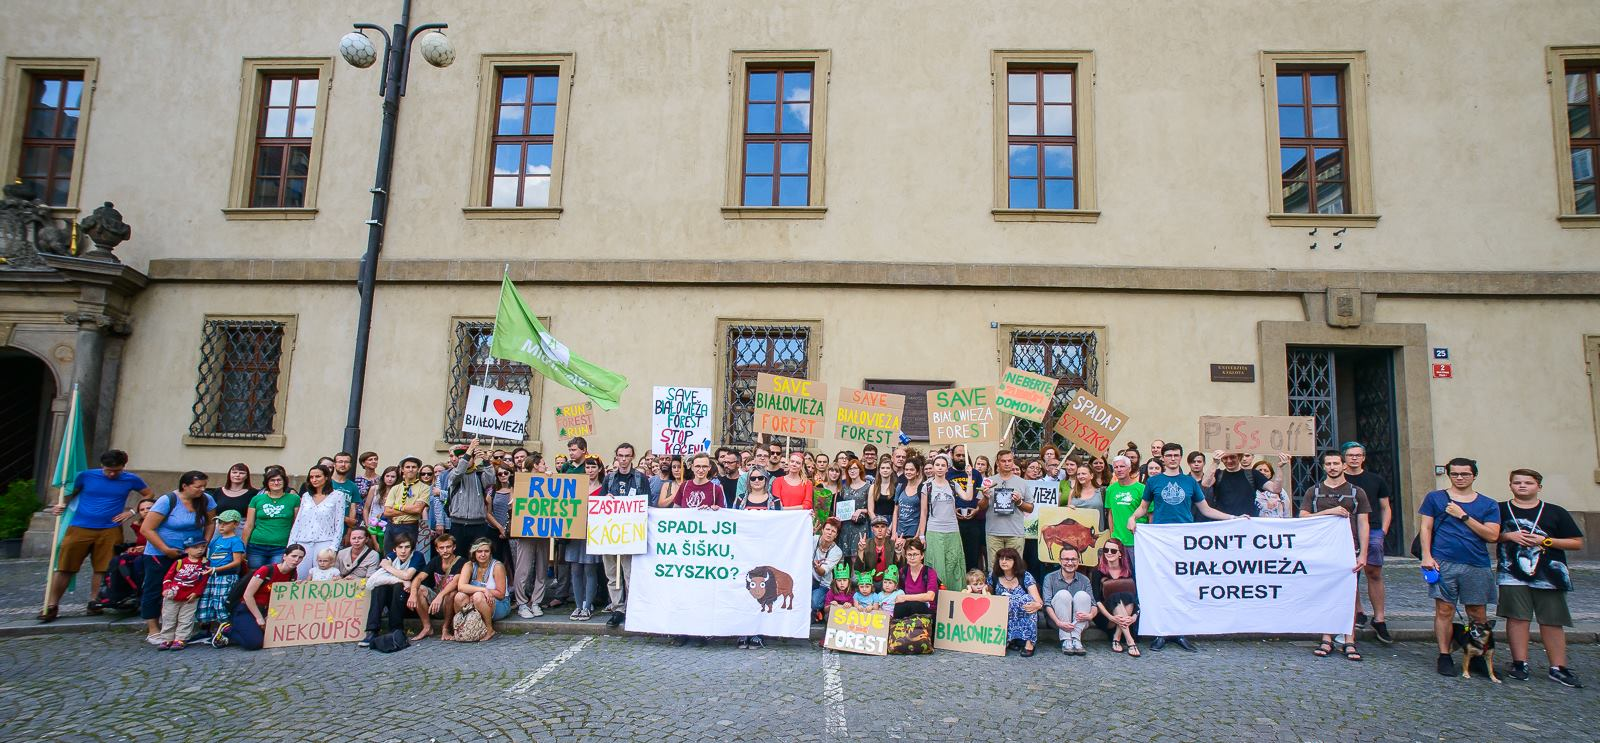 Protesters at Malostranské náměstí calling for the suspension of logging in the Bialowieza Forest